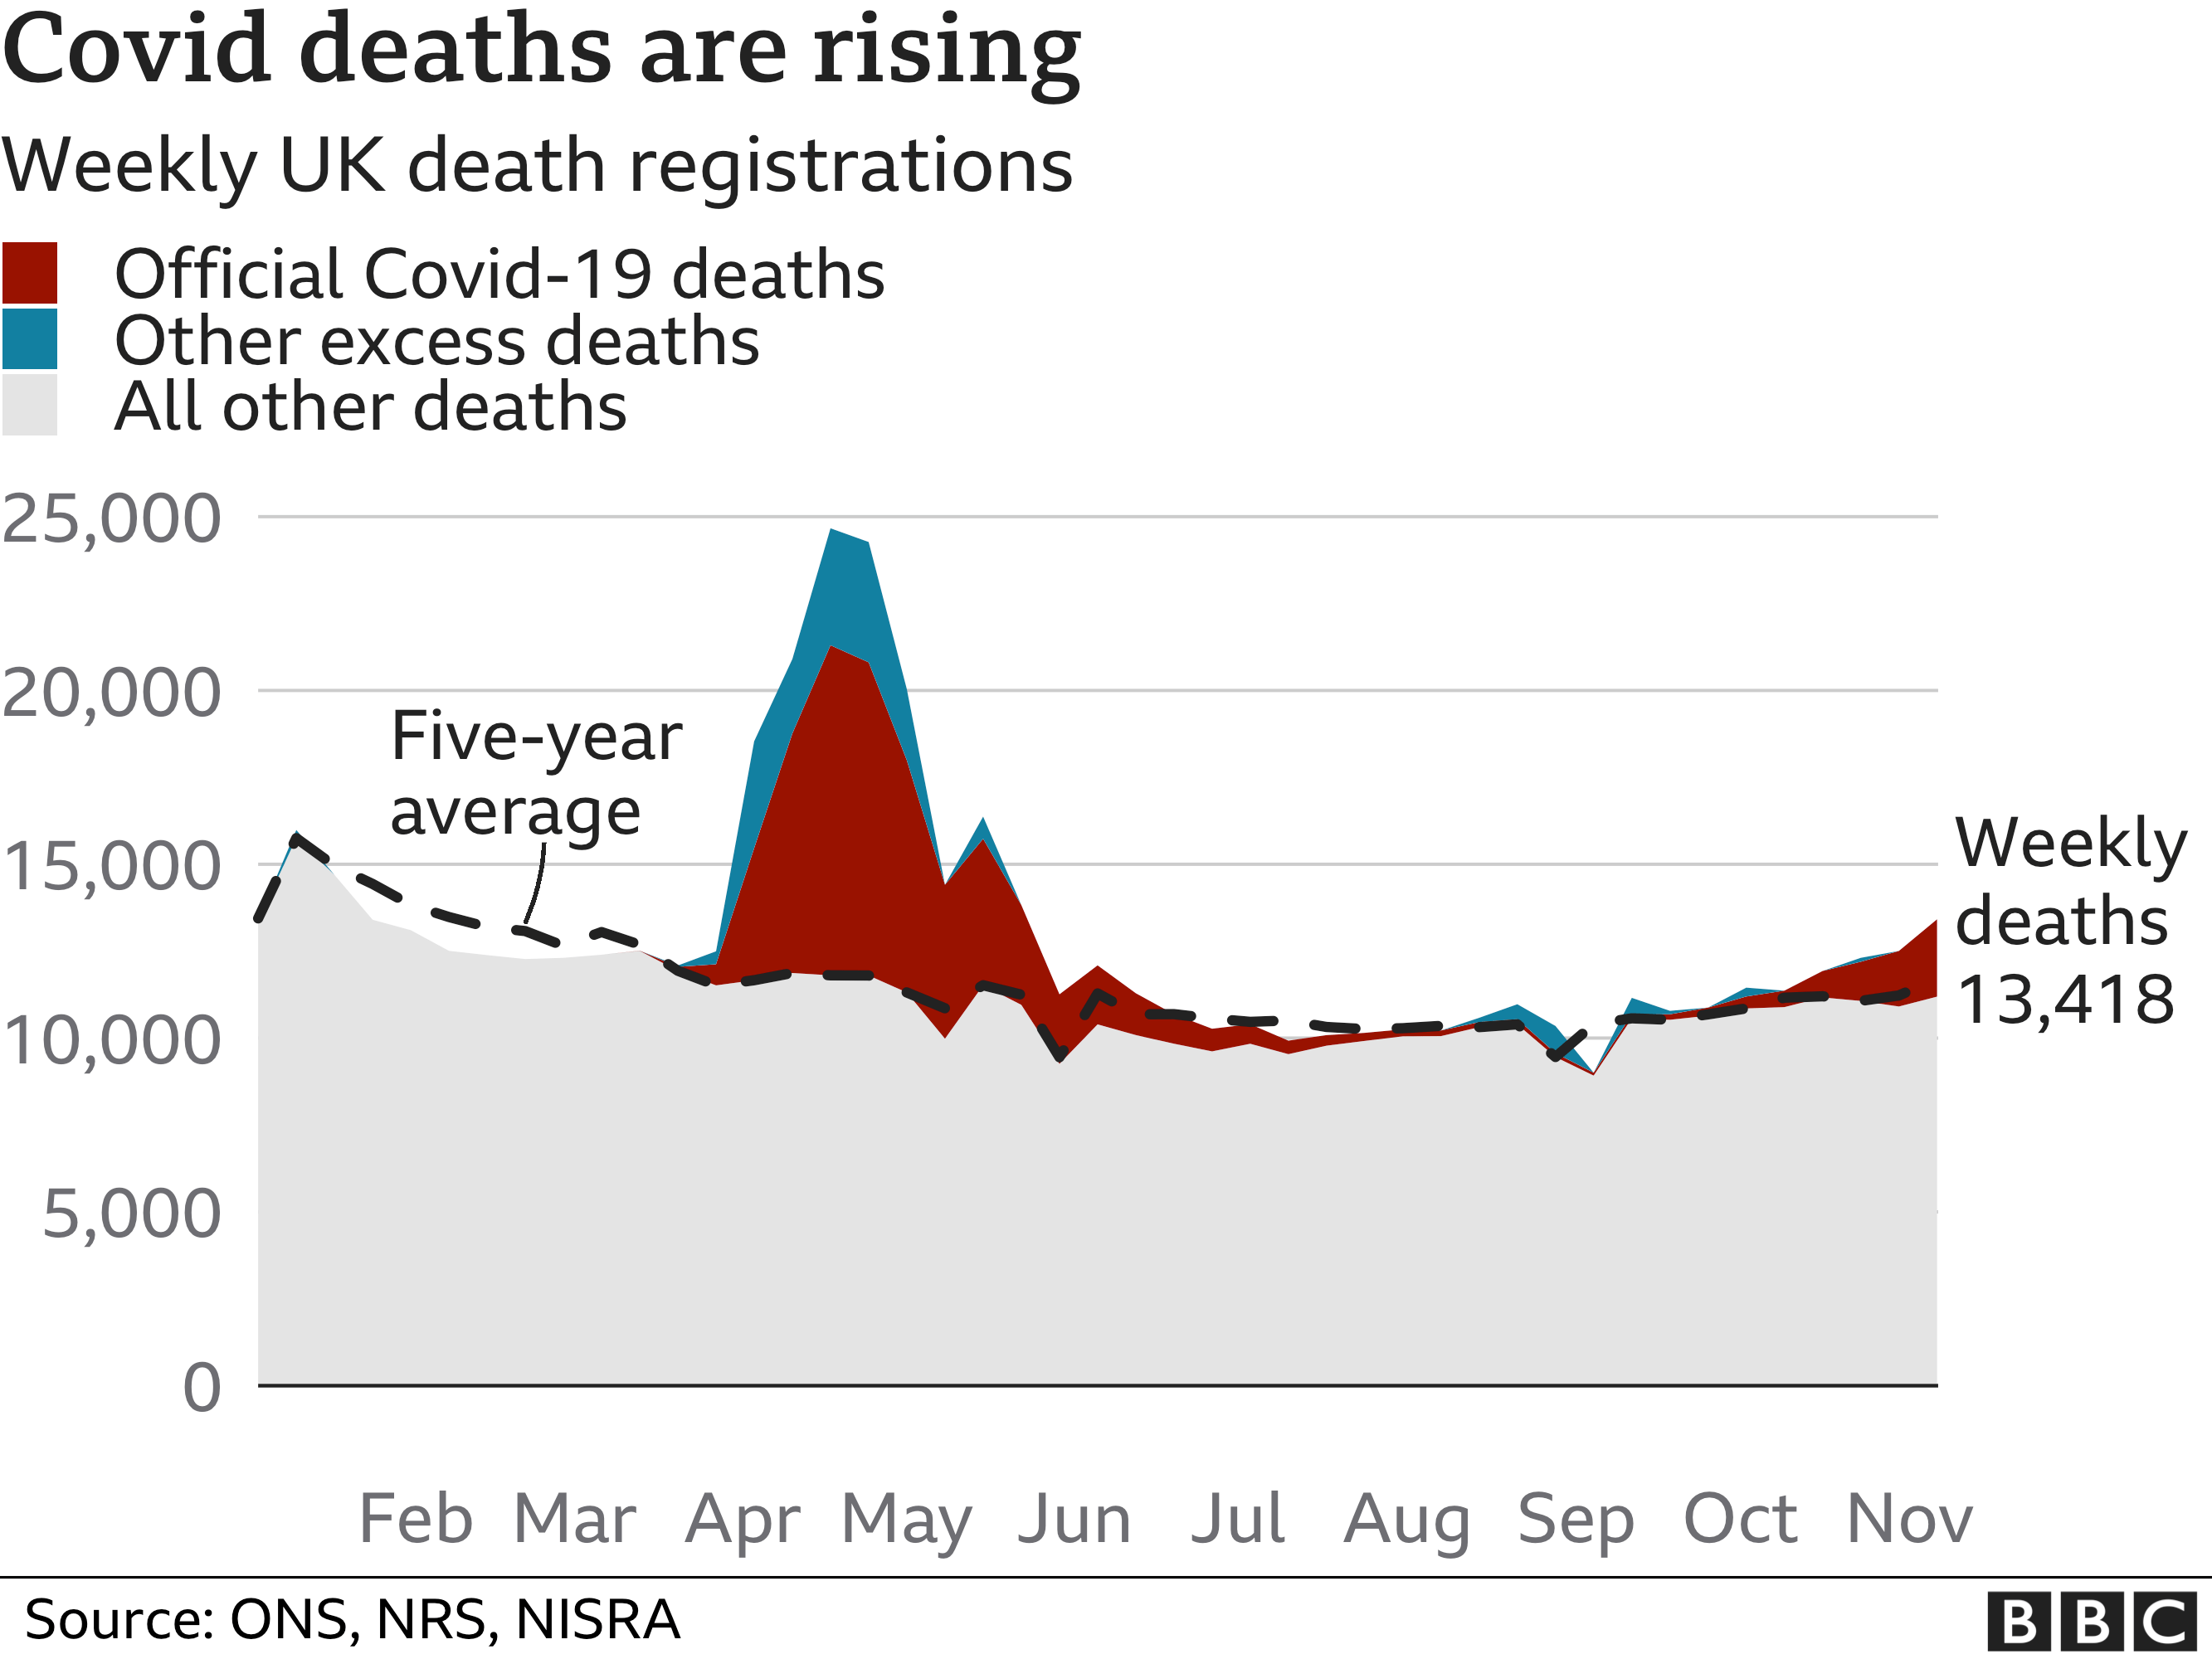 Weekly deaths rising but below peak levels